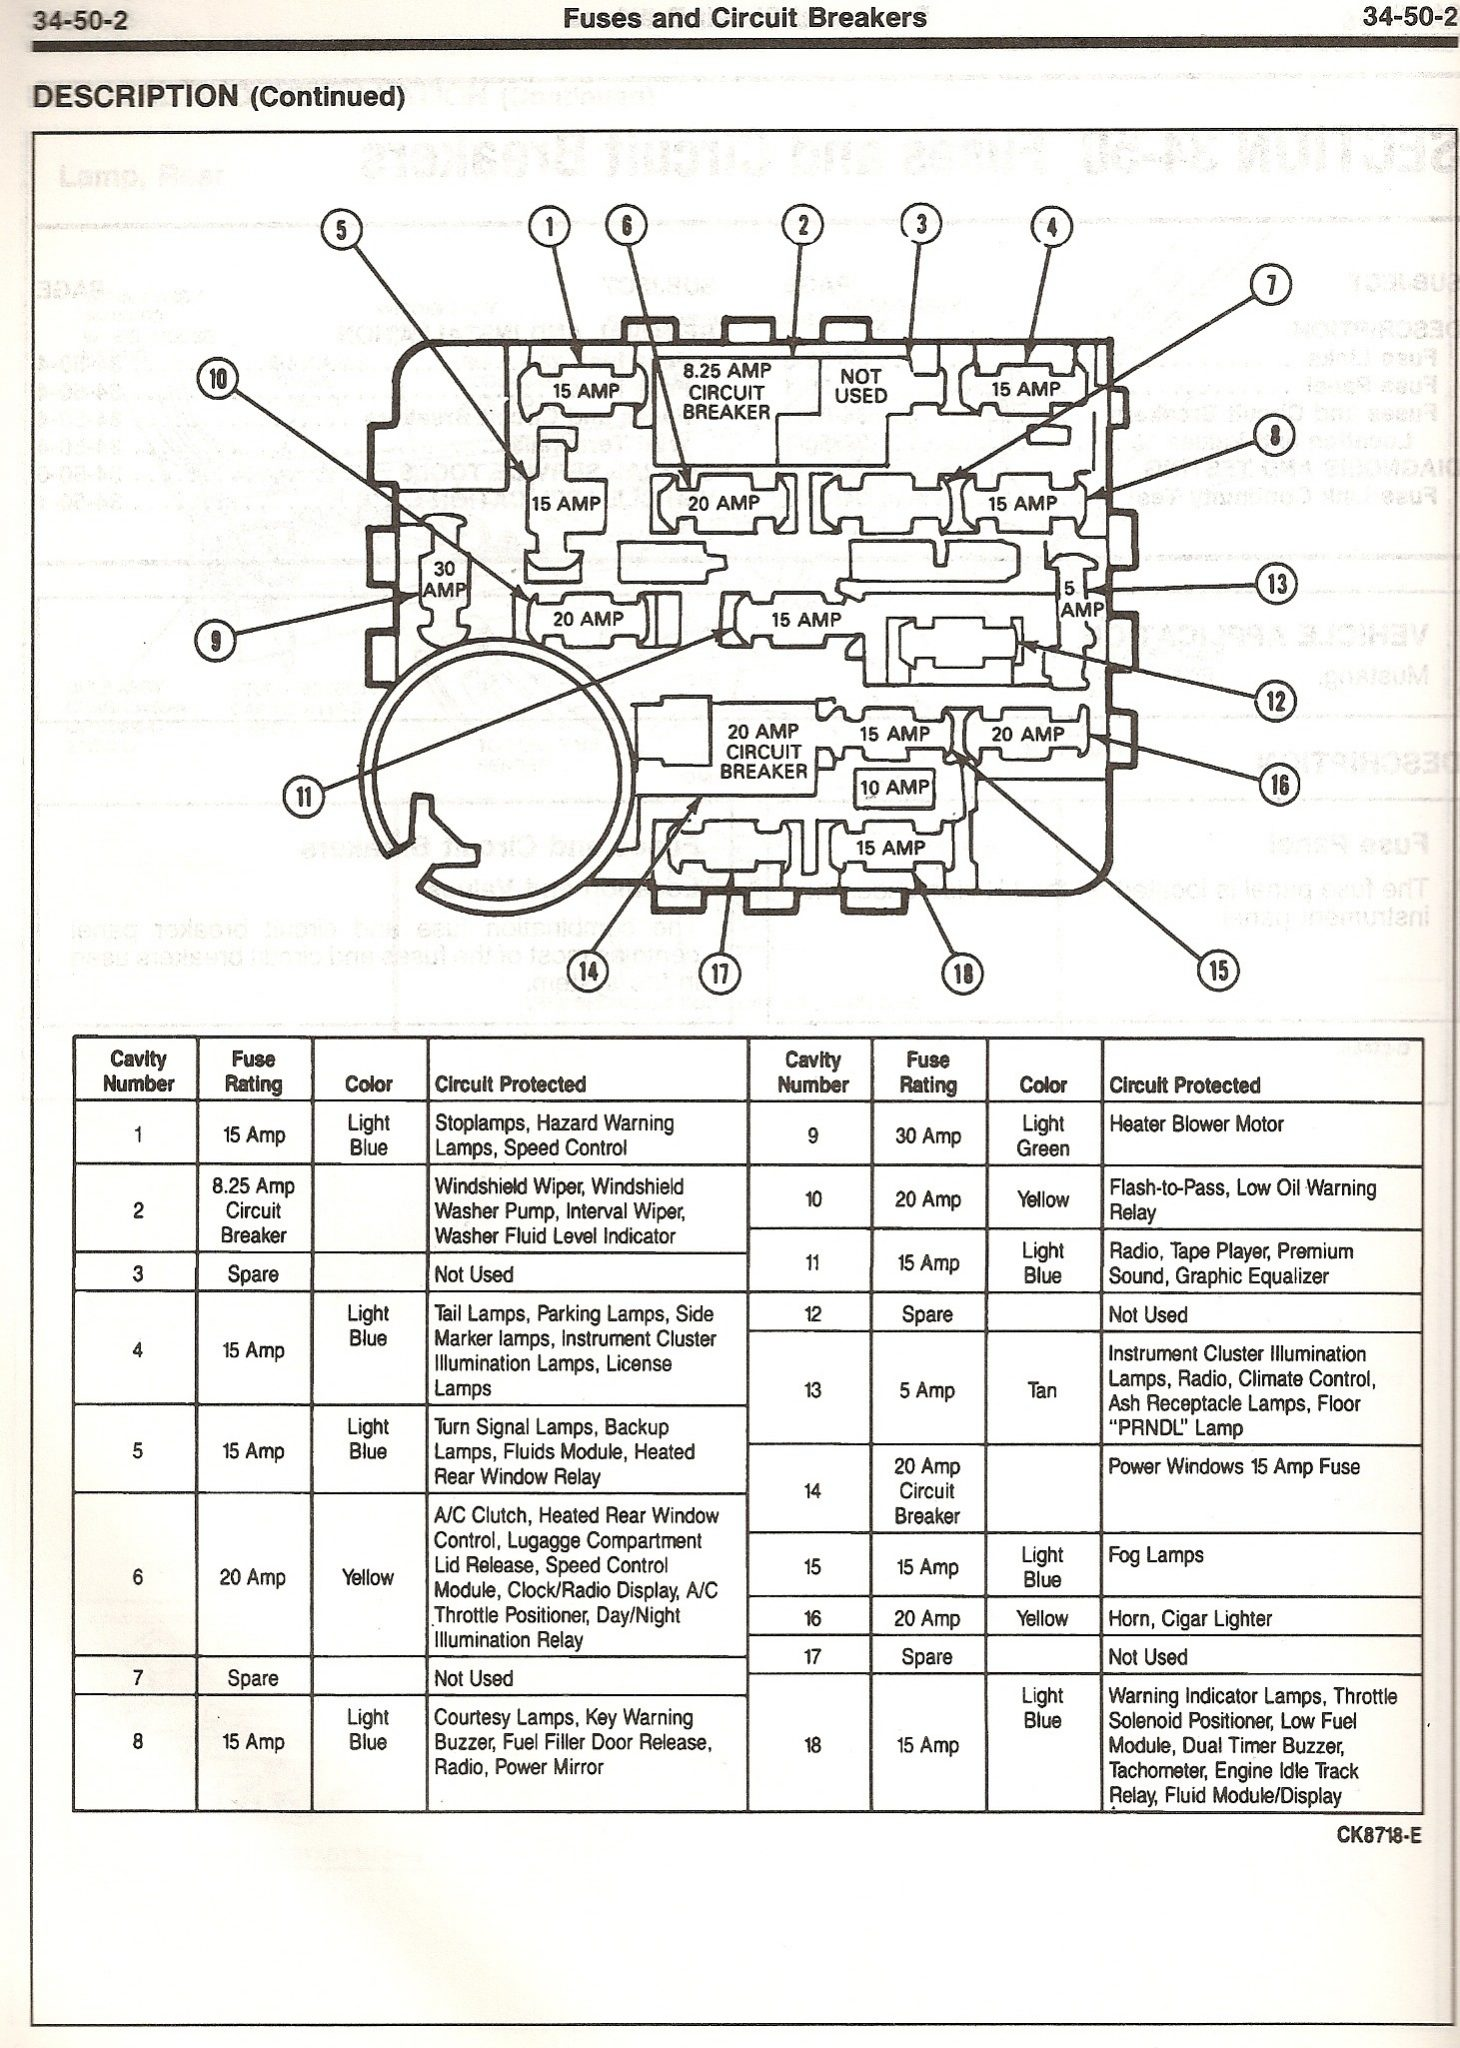 1990 Ford Crown Victoria Fuse Box Wiring Diagrams Vic Diagram Library Buick Lesabre